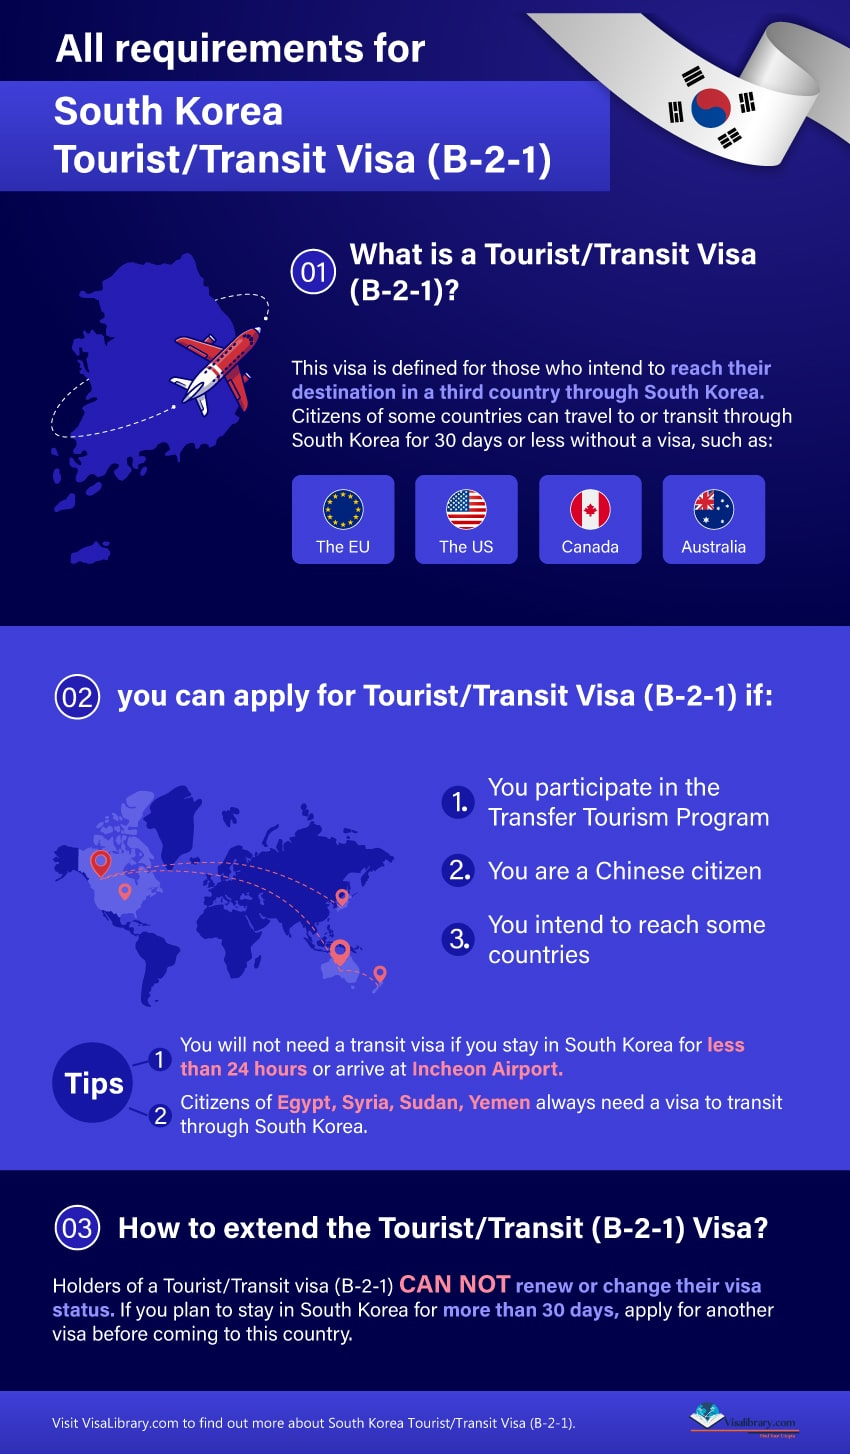 All requirements for B-2-1 Tourist / Transit Visa in South Korea info